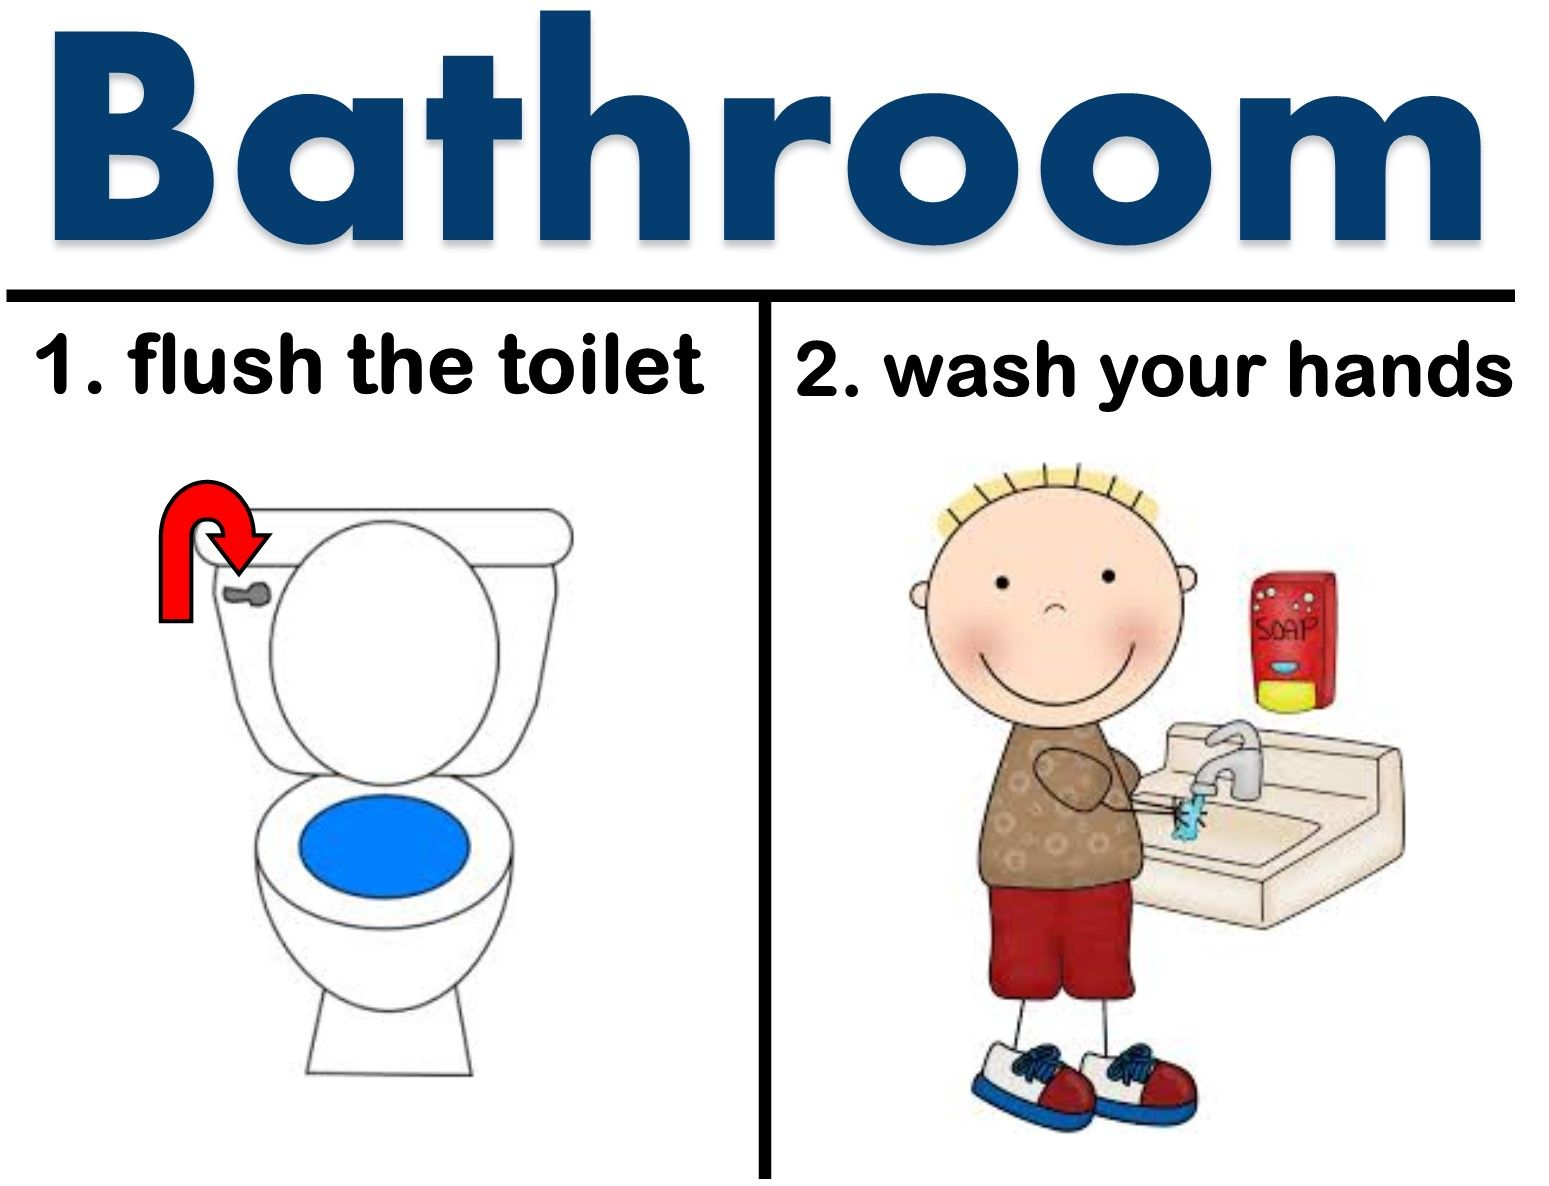 Do You Have A Bathroom In Your Classroom And Need A Visual Aid For A Reminder For The Students